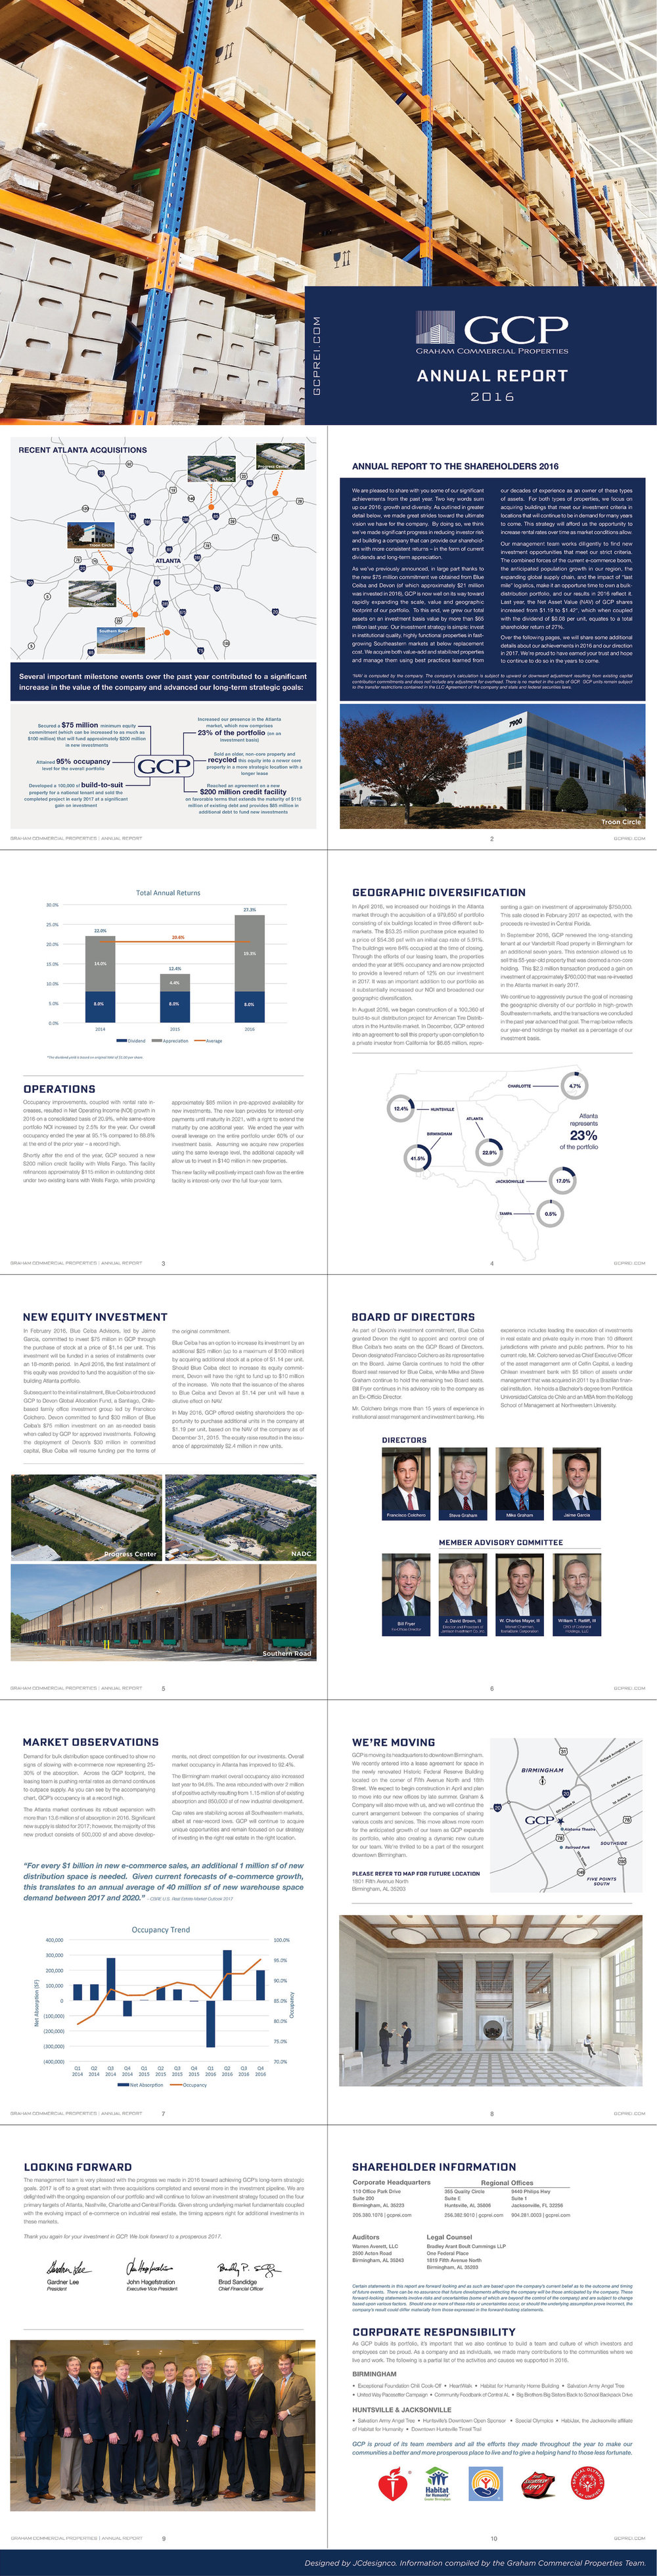 GCP Annual Report